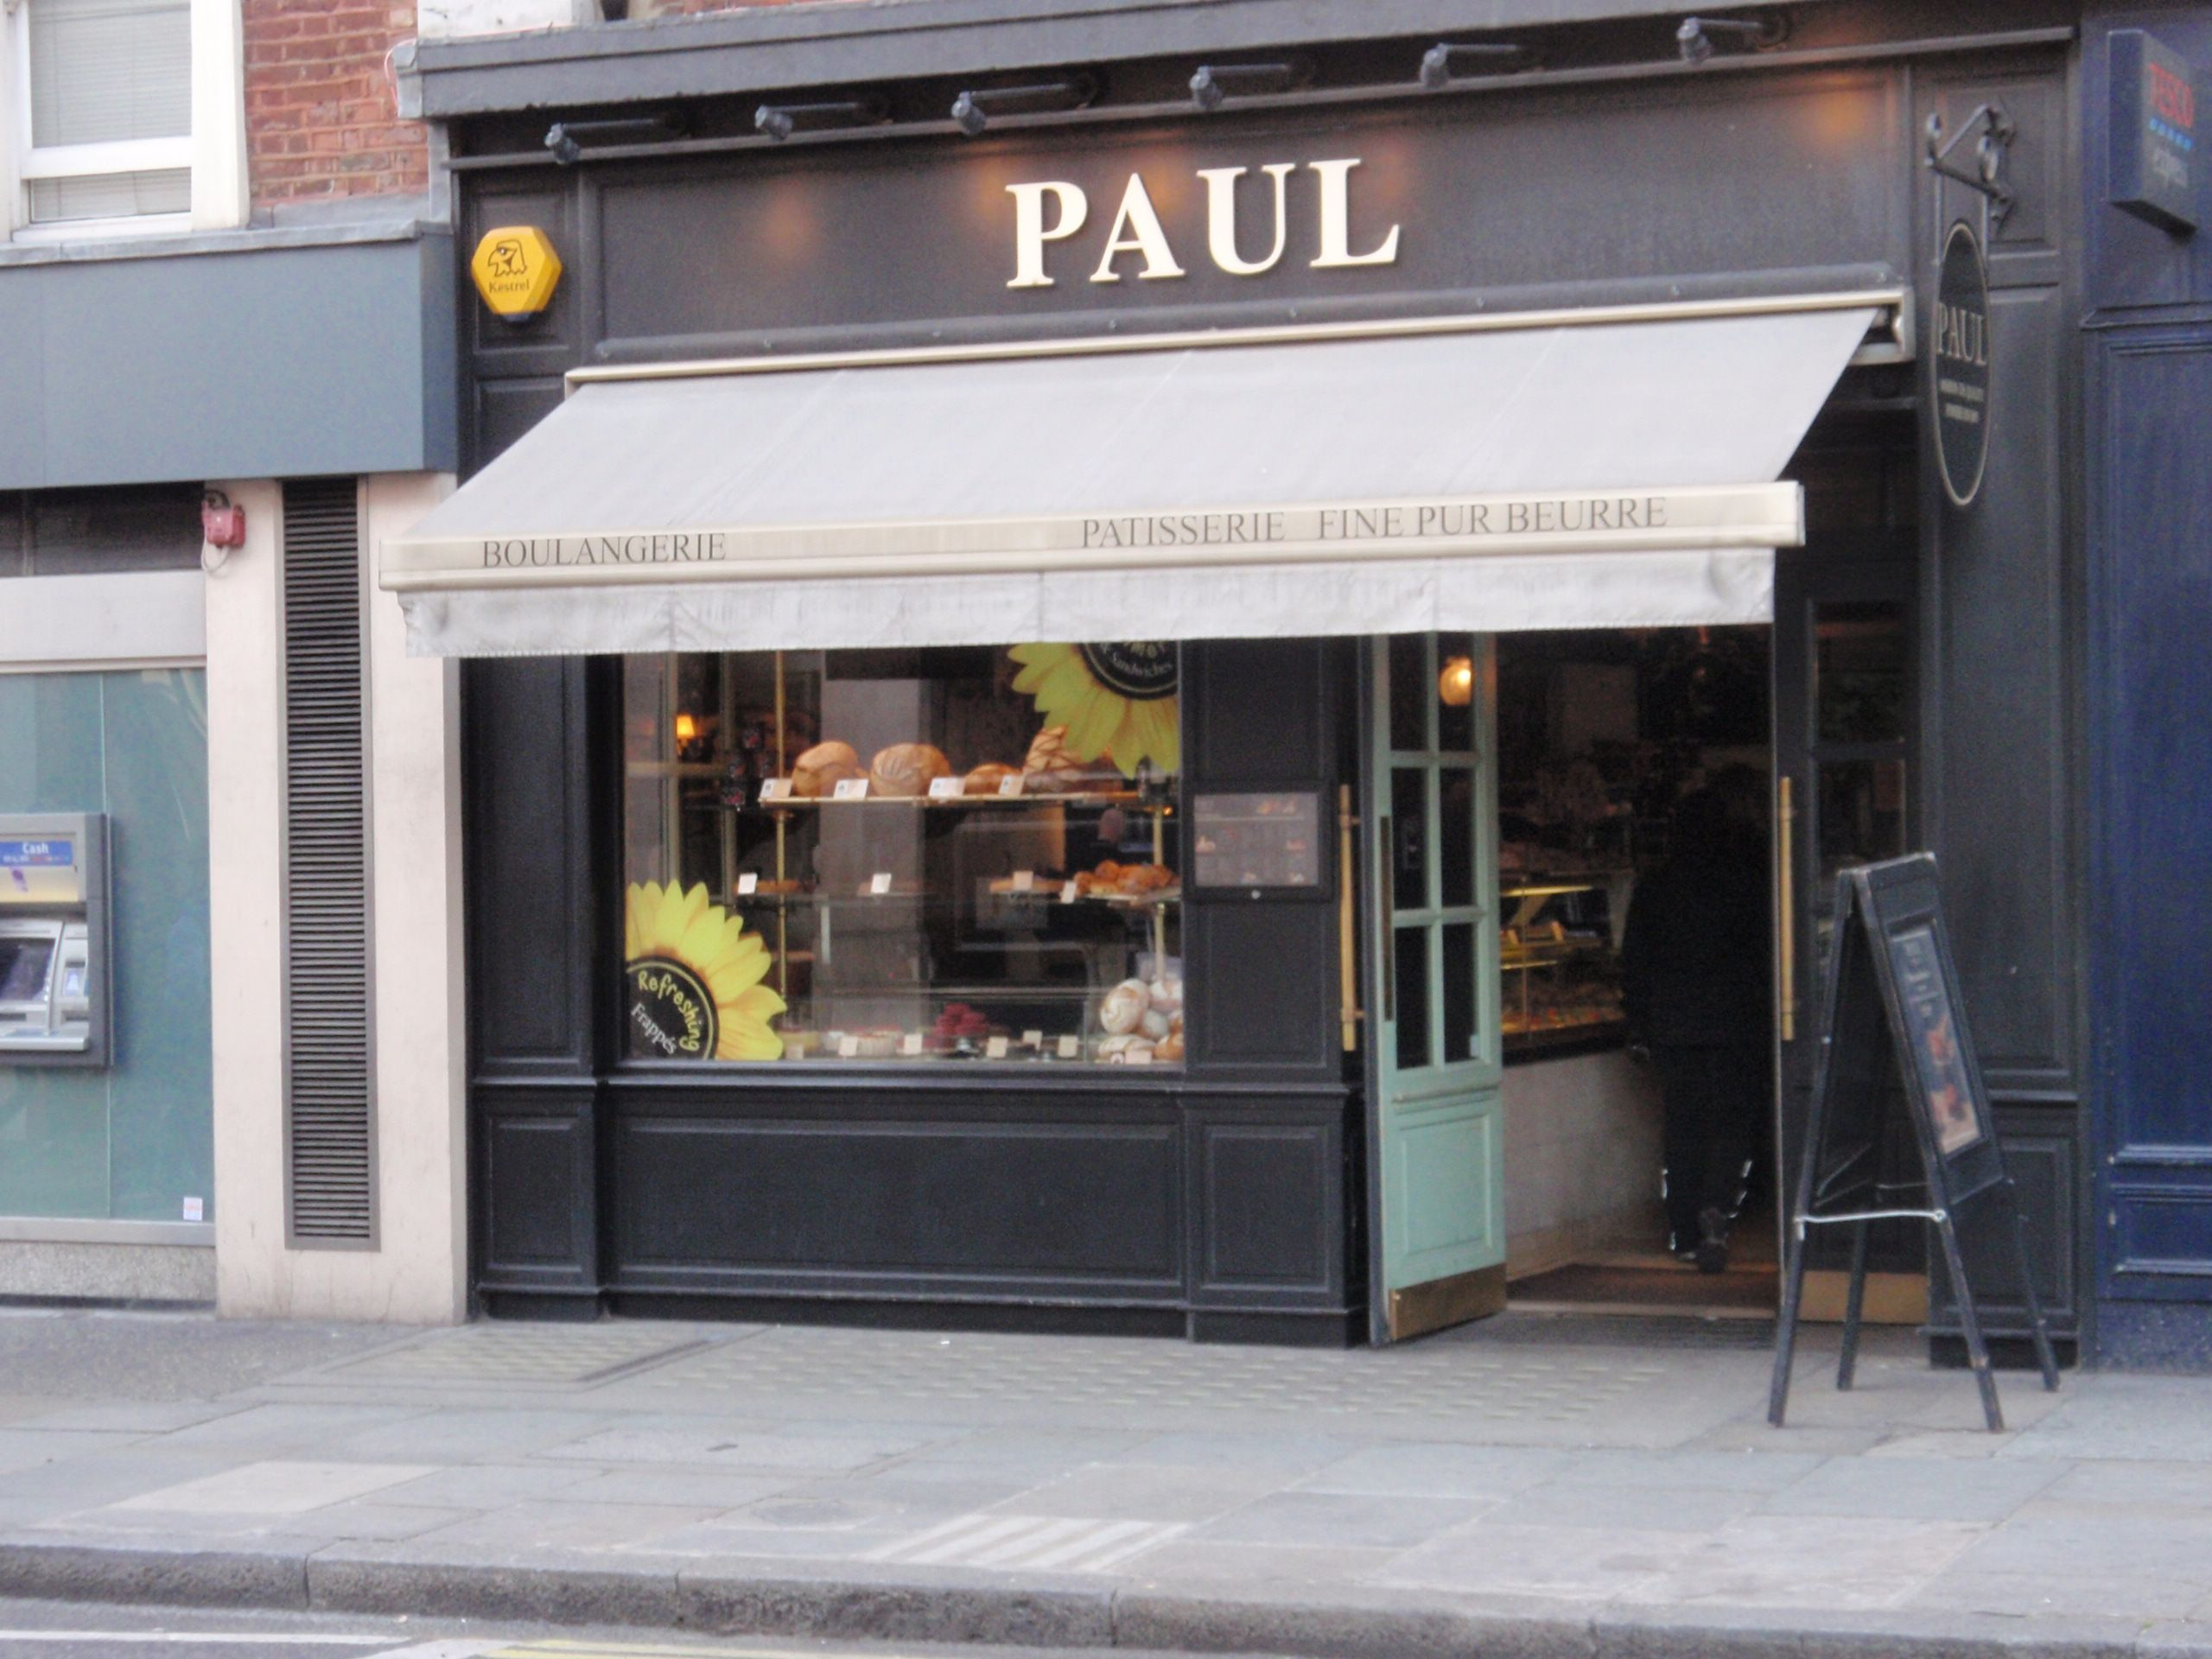 paul's uk awning and exterior colour Coffee shop